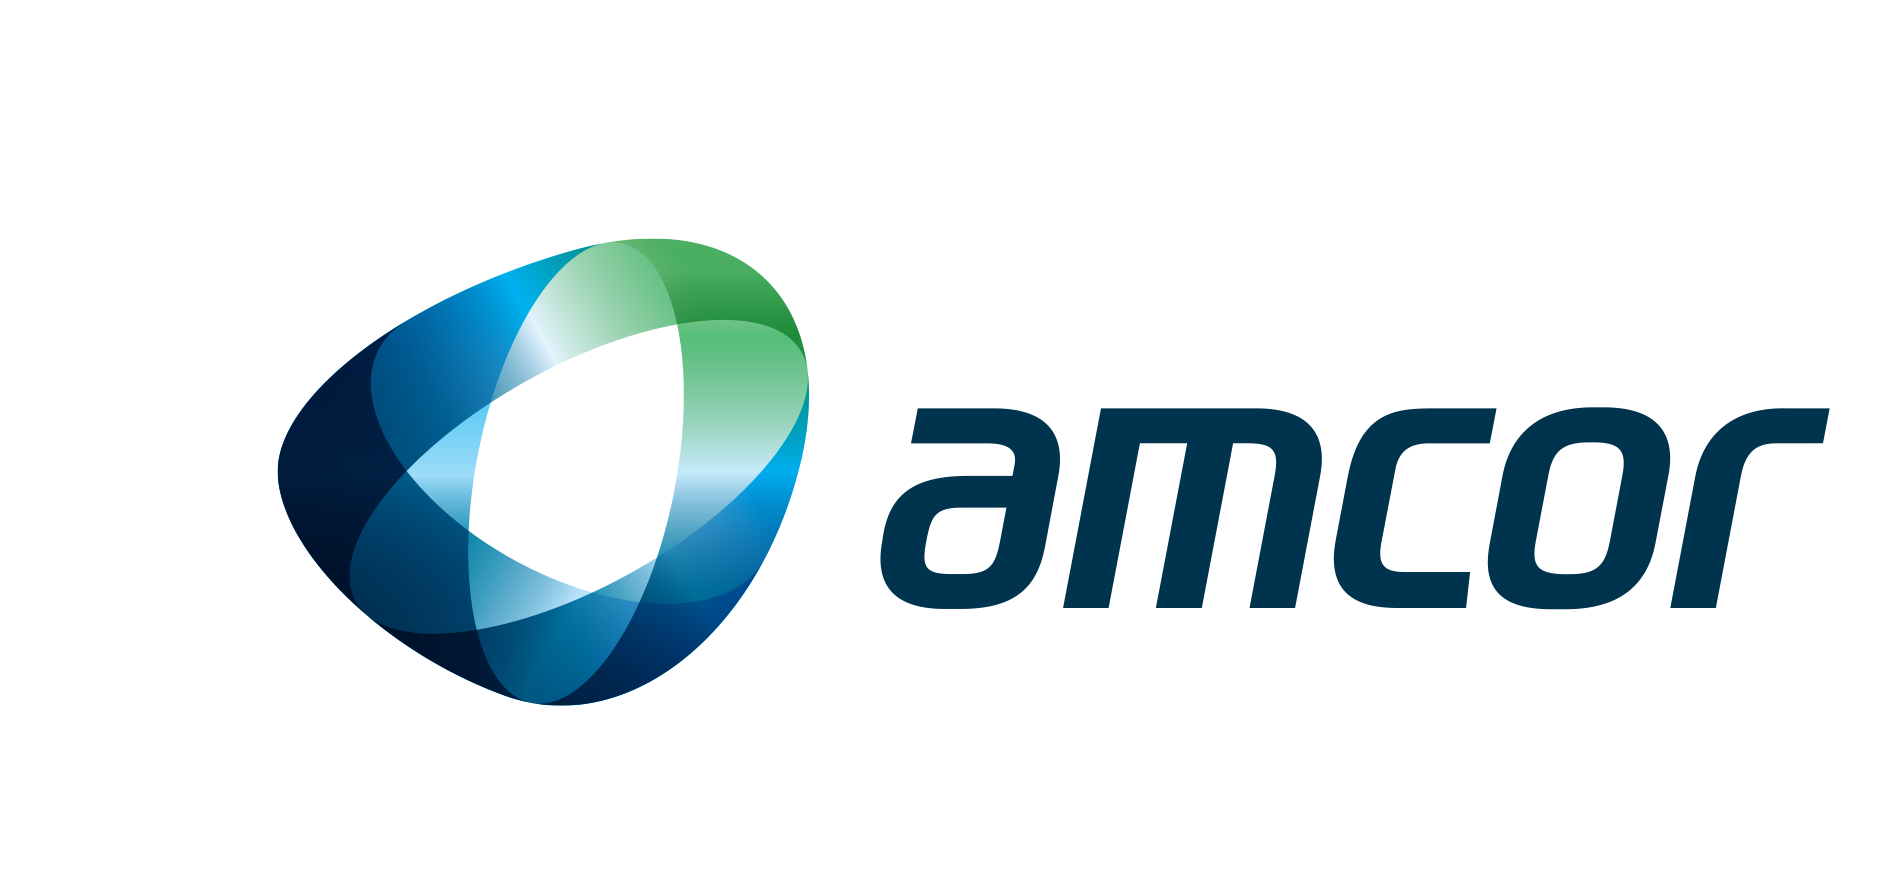 https://www.amcor.com/products/healthcare